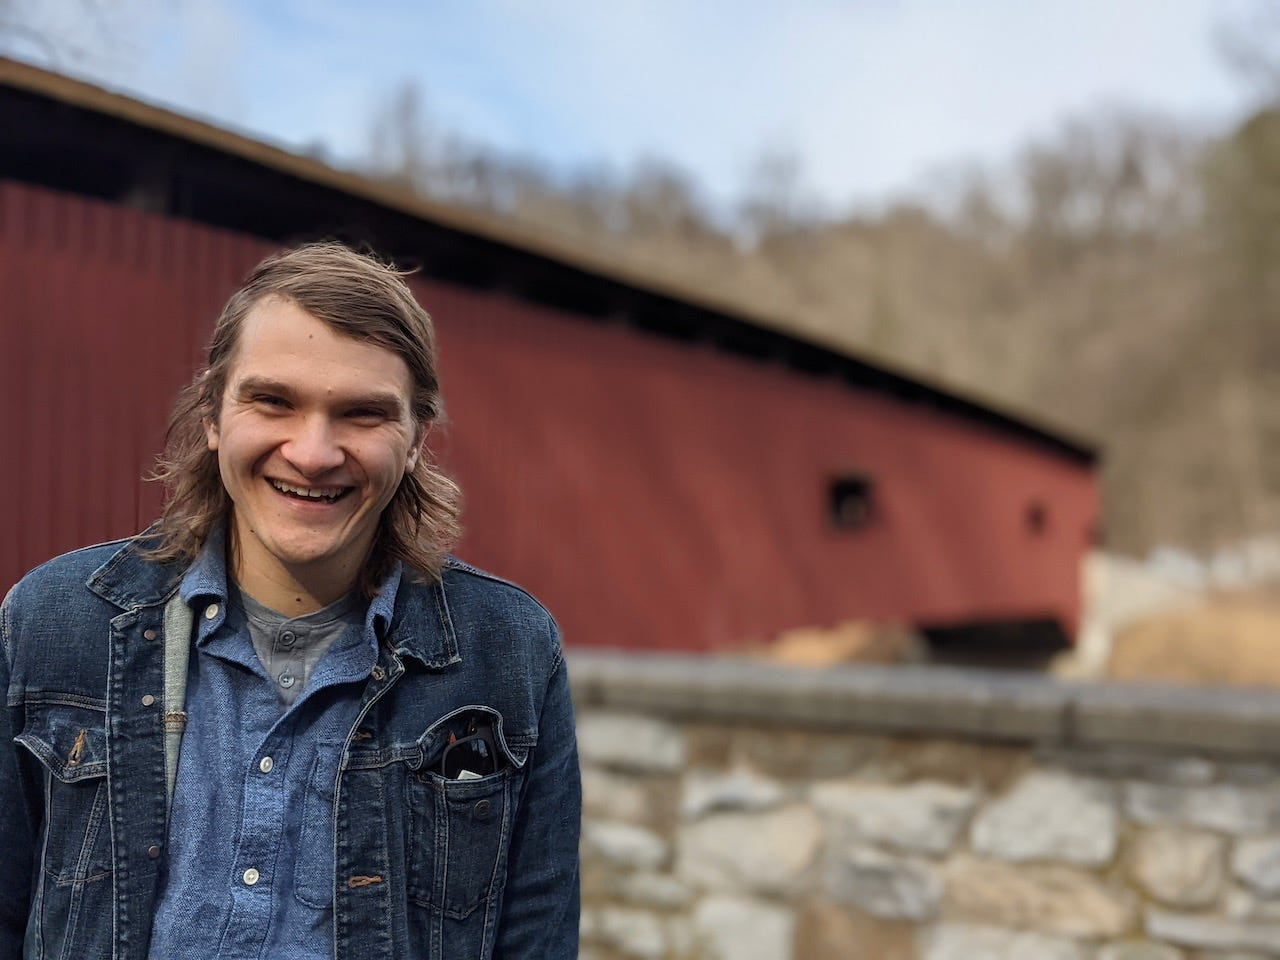 brett standing in front of a covered bridge